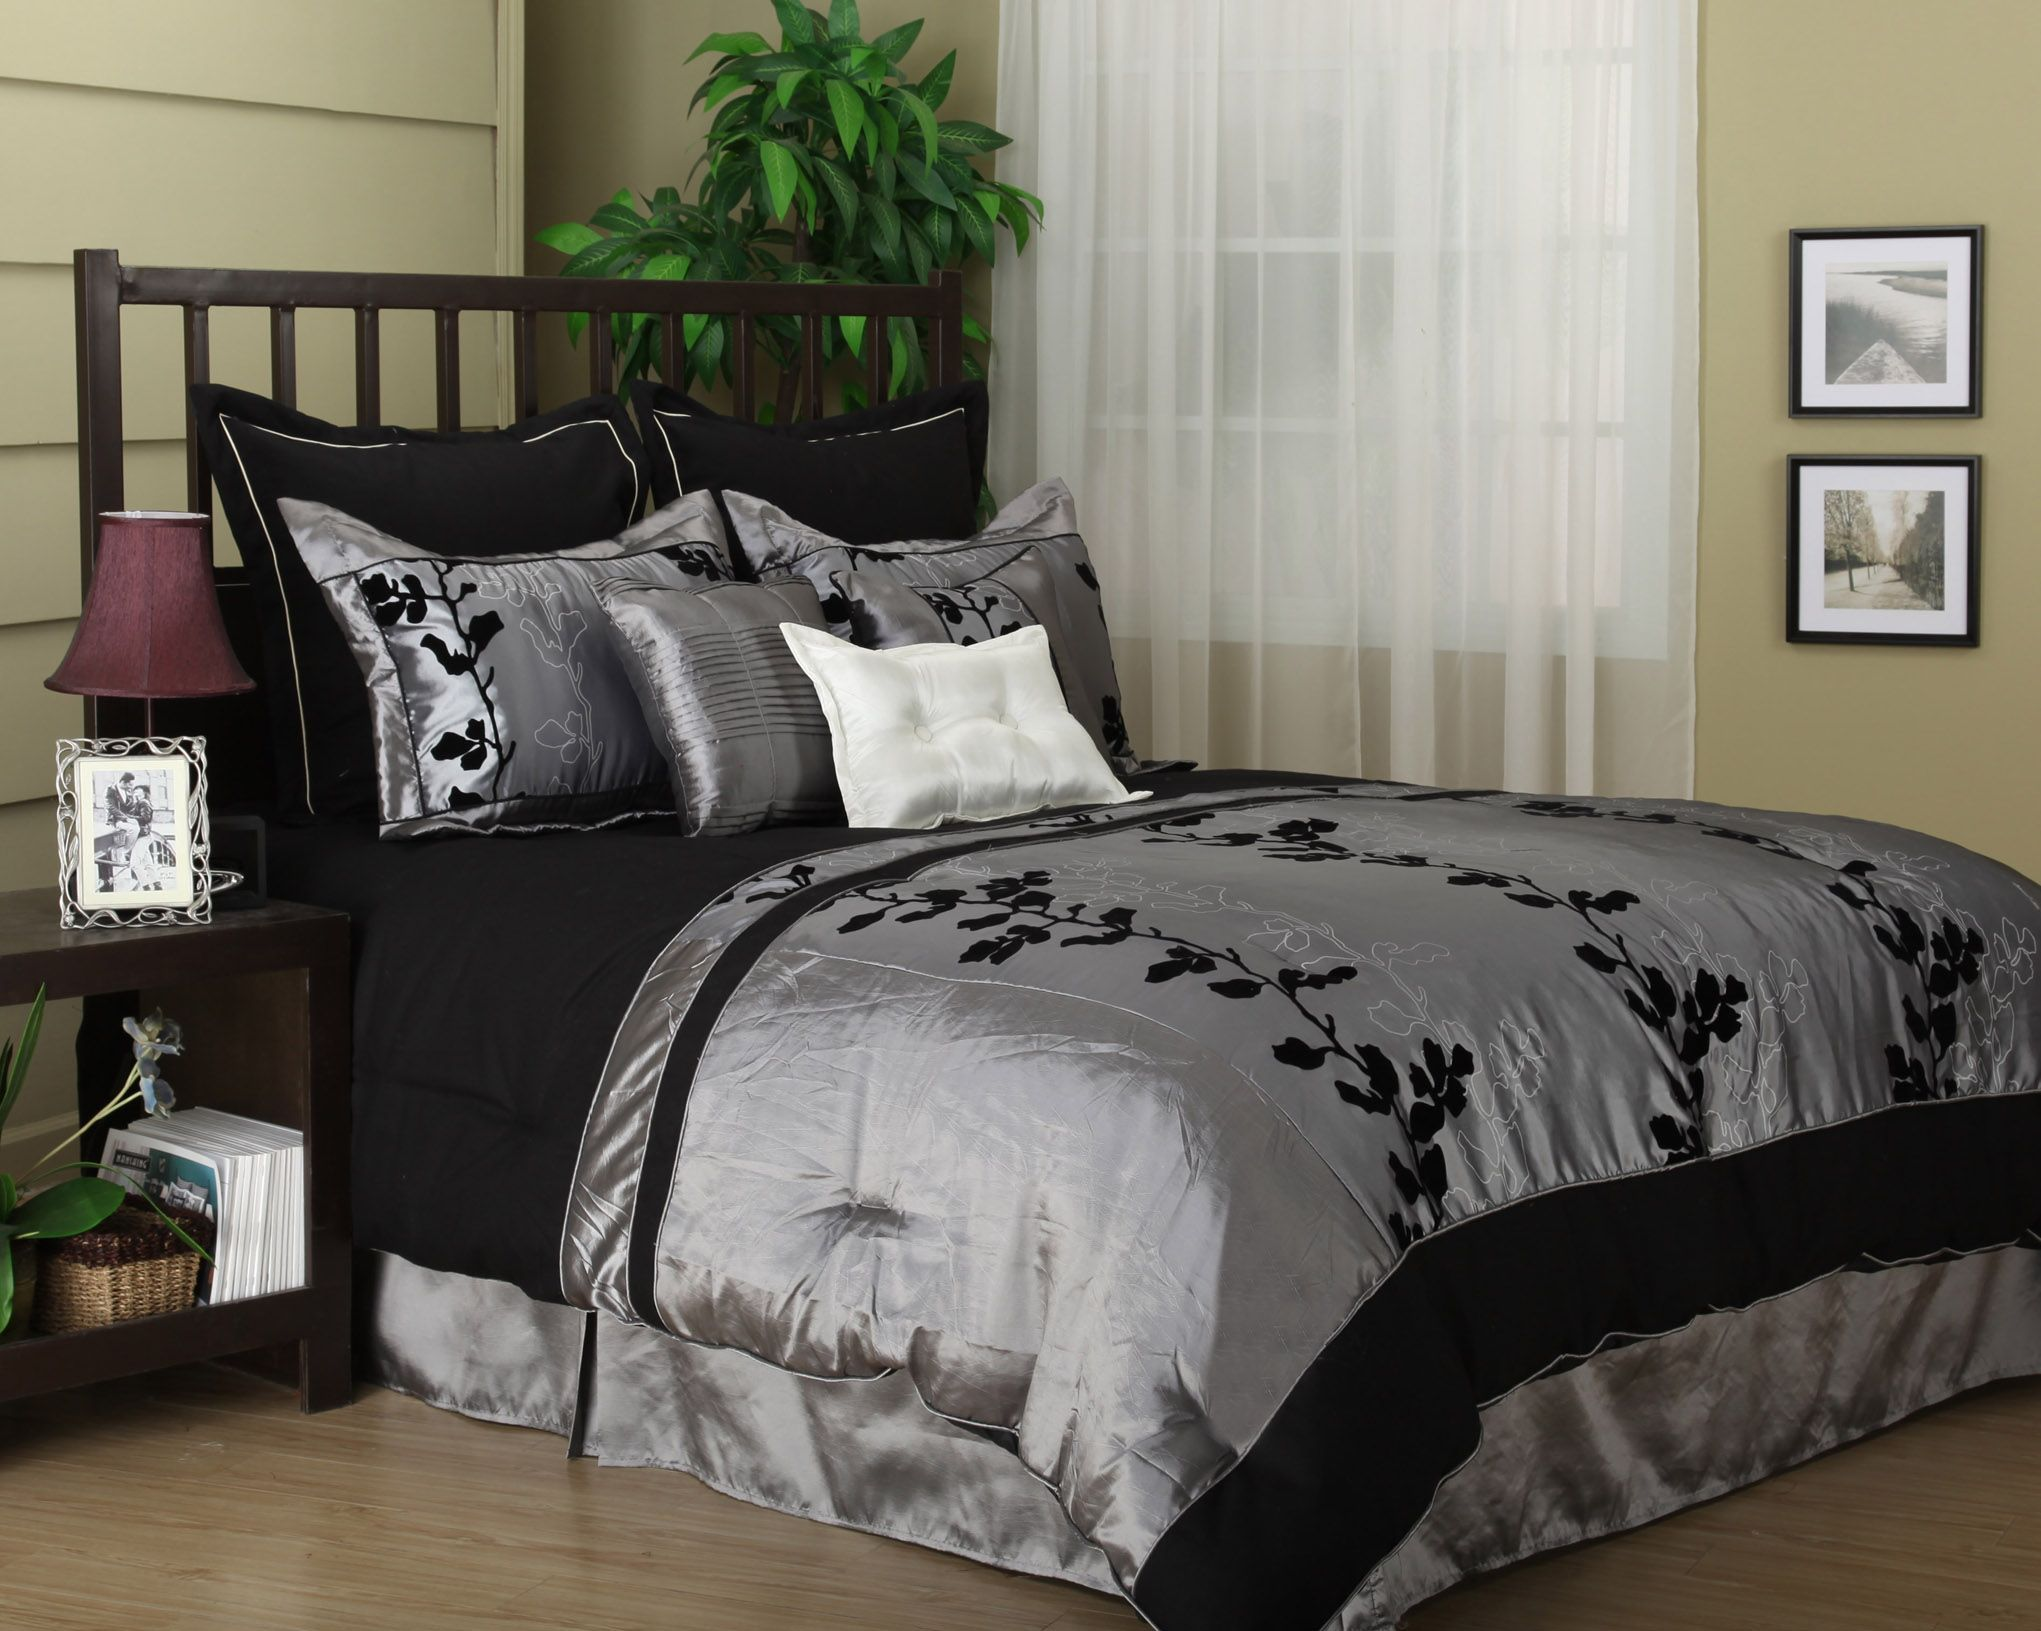 wendy silver/black 7-piece comforter set bed-in-a-bag king / queen